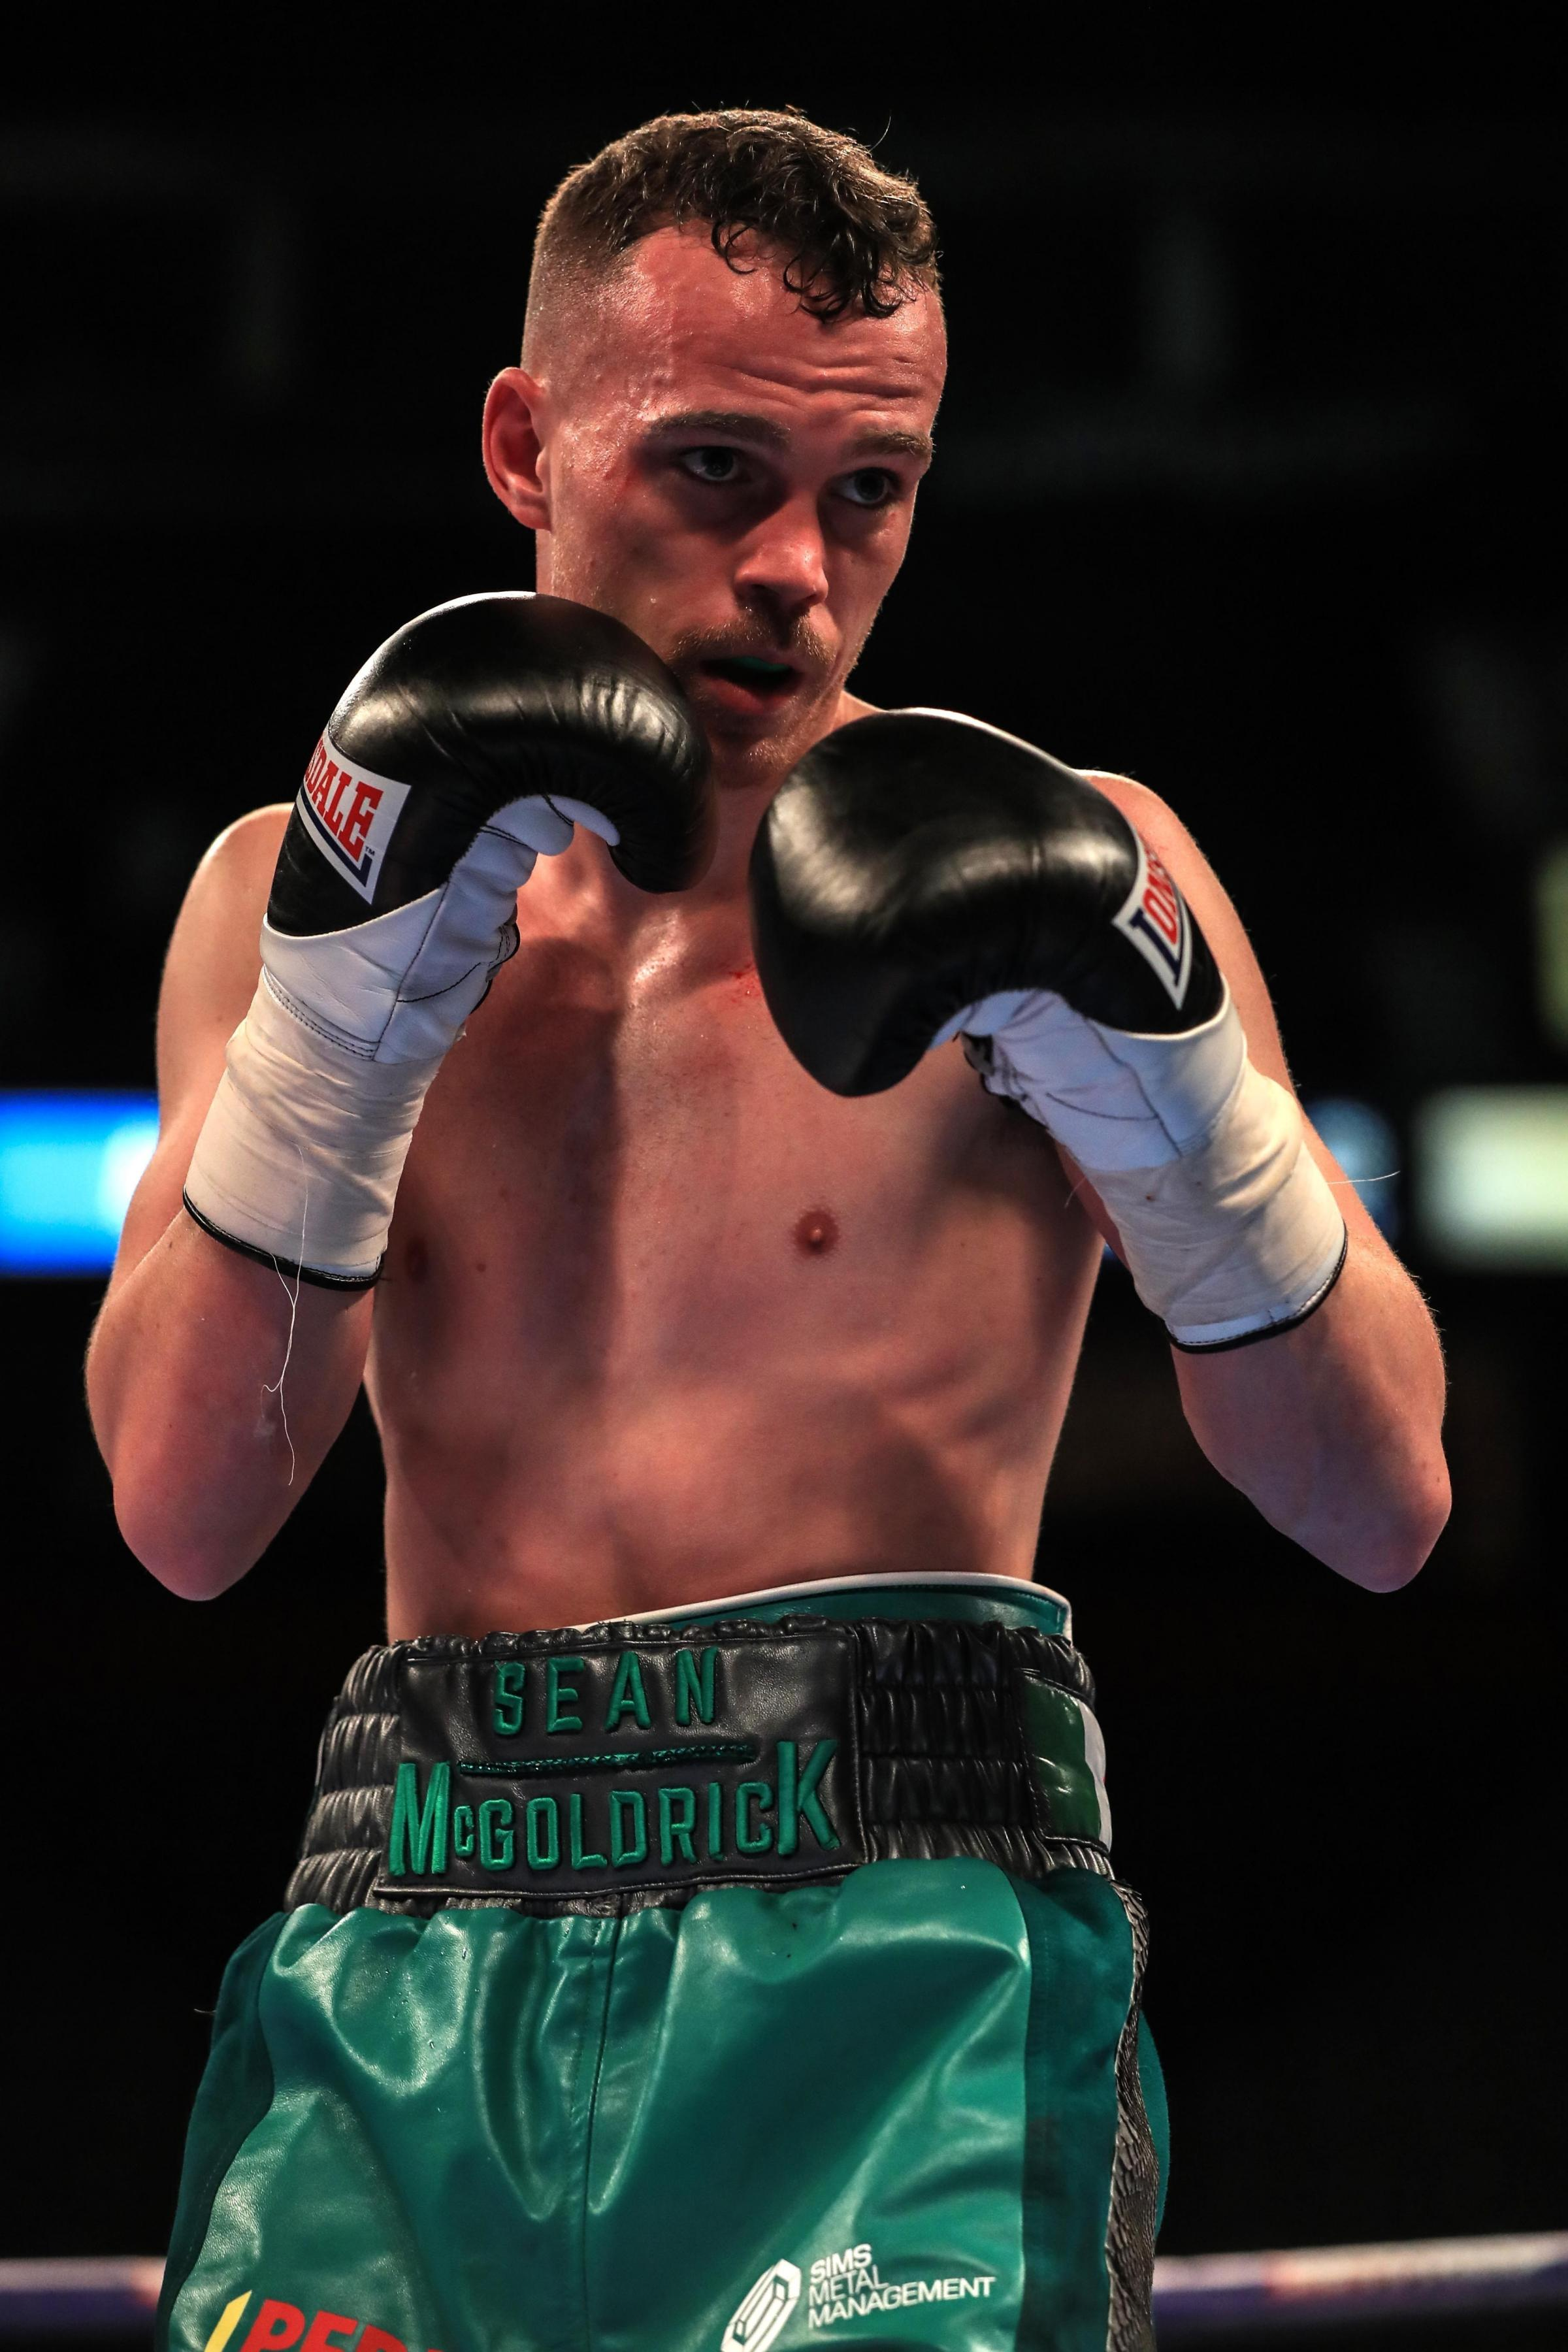 Sean McGoldrick in the Bantamweight contest against Brett Fidge at Manchester Arena. PRESS ASSOCIATION Photo. Picture date: Saturday March 25, 2017. See PA story BOXING Manchester. Photo credit should read: Peter Byrne/PA Wire.